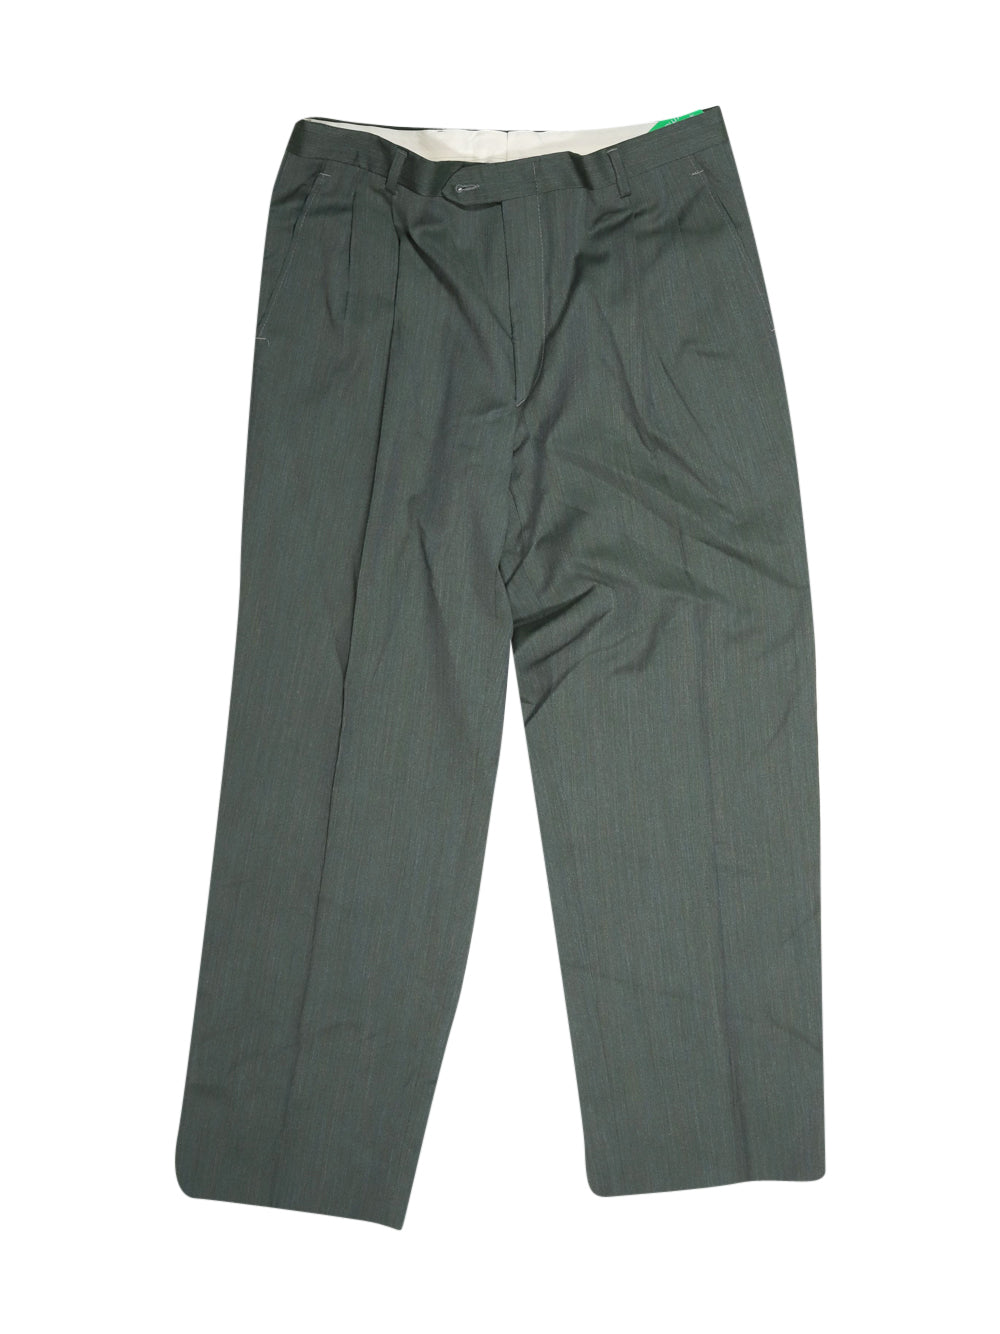 Front photo of Preloved Cerruti 1881 Green Man's trousers - size 40/L